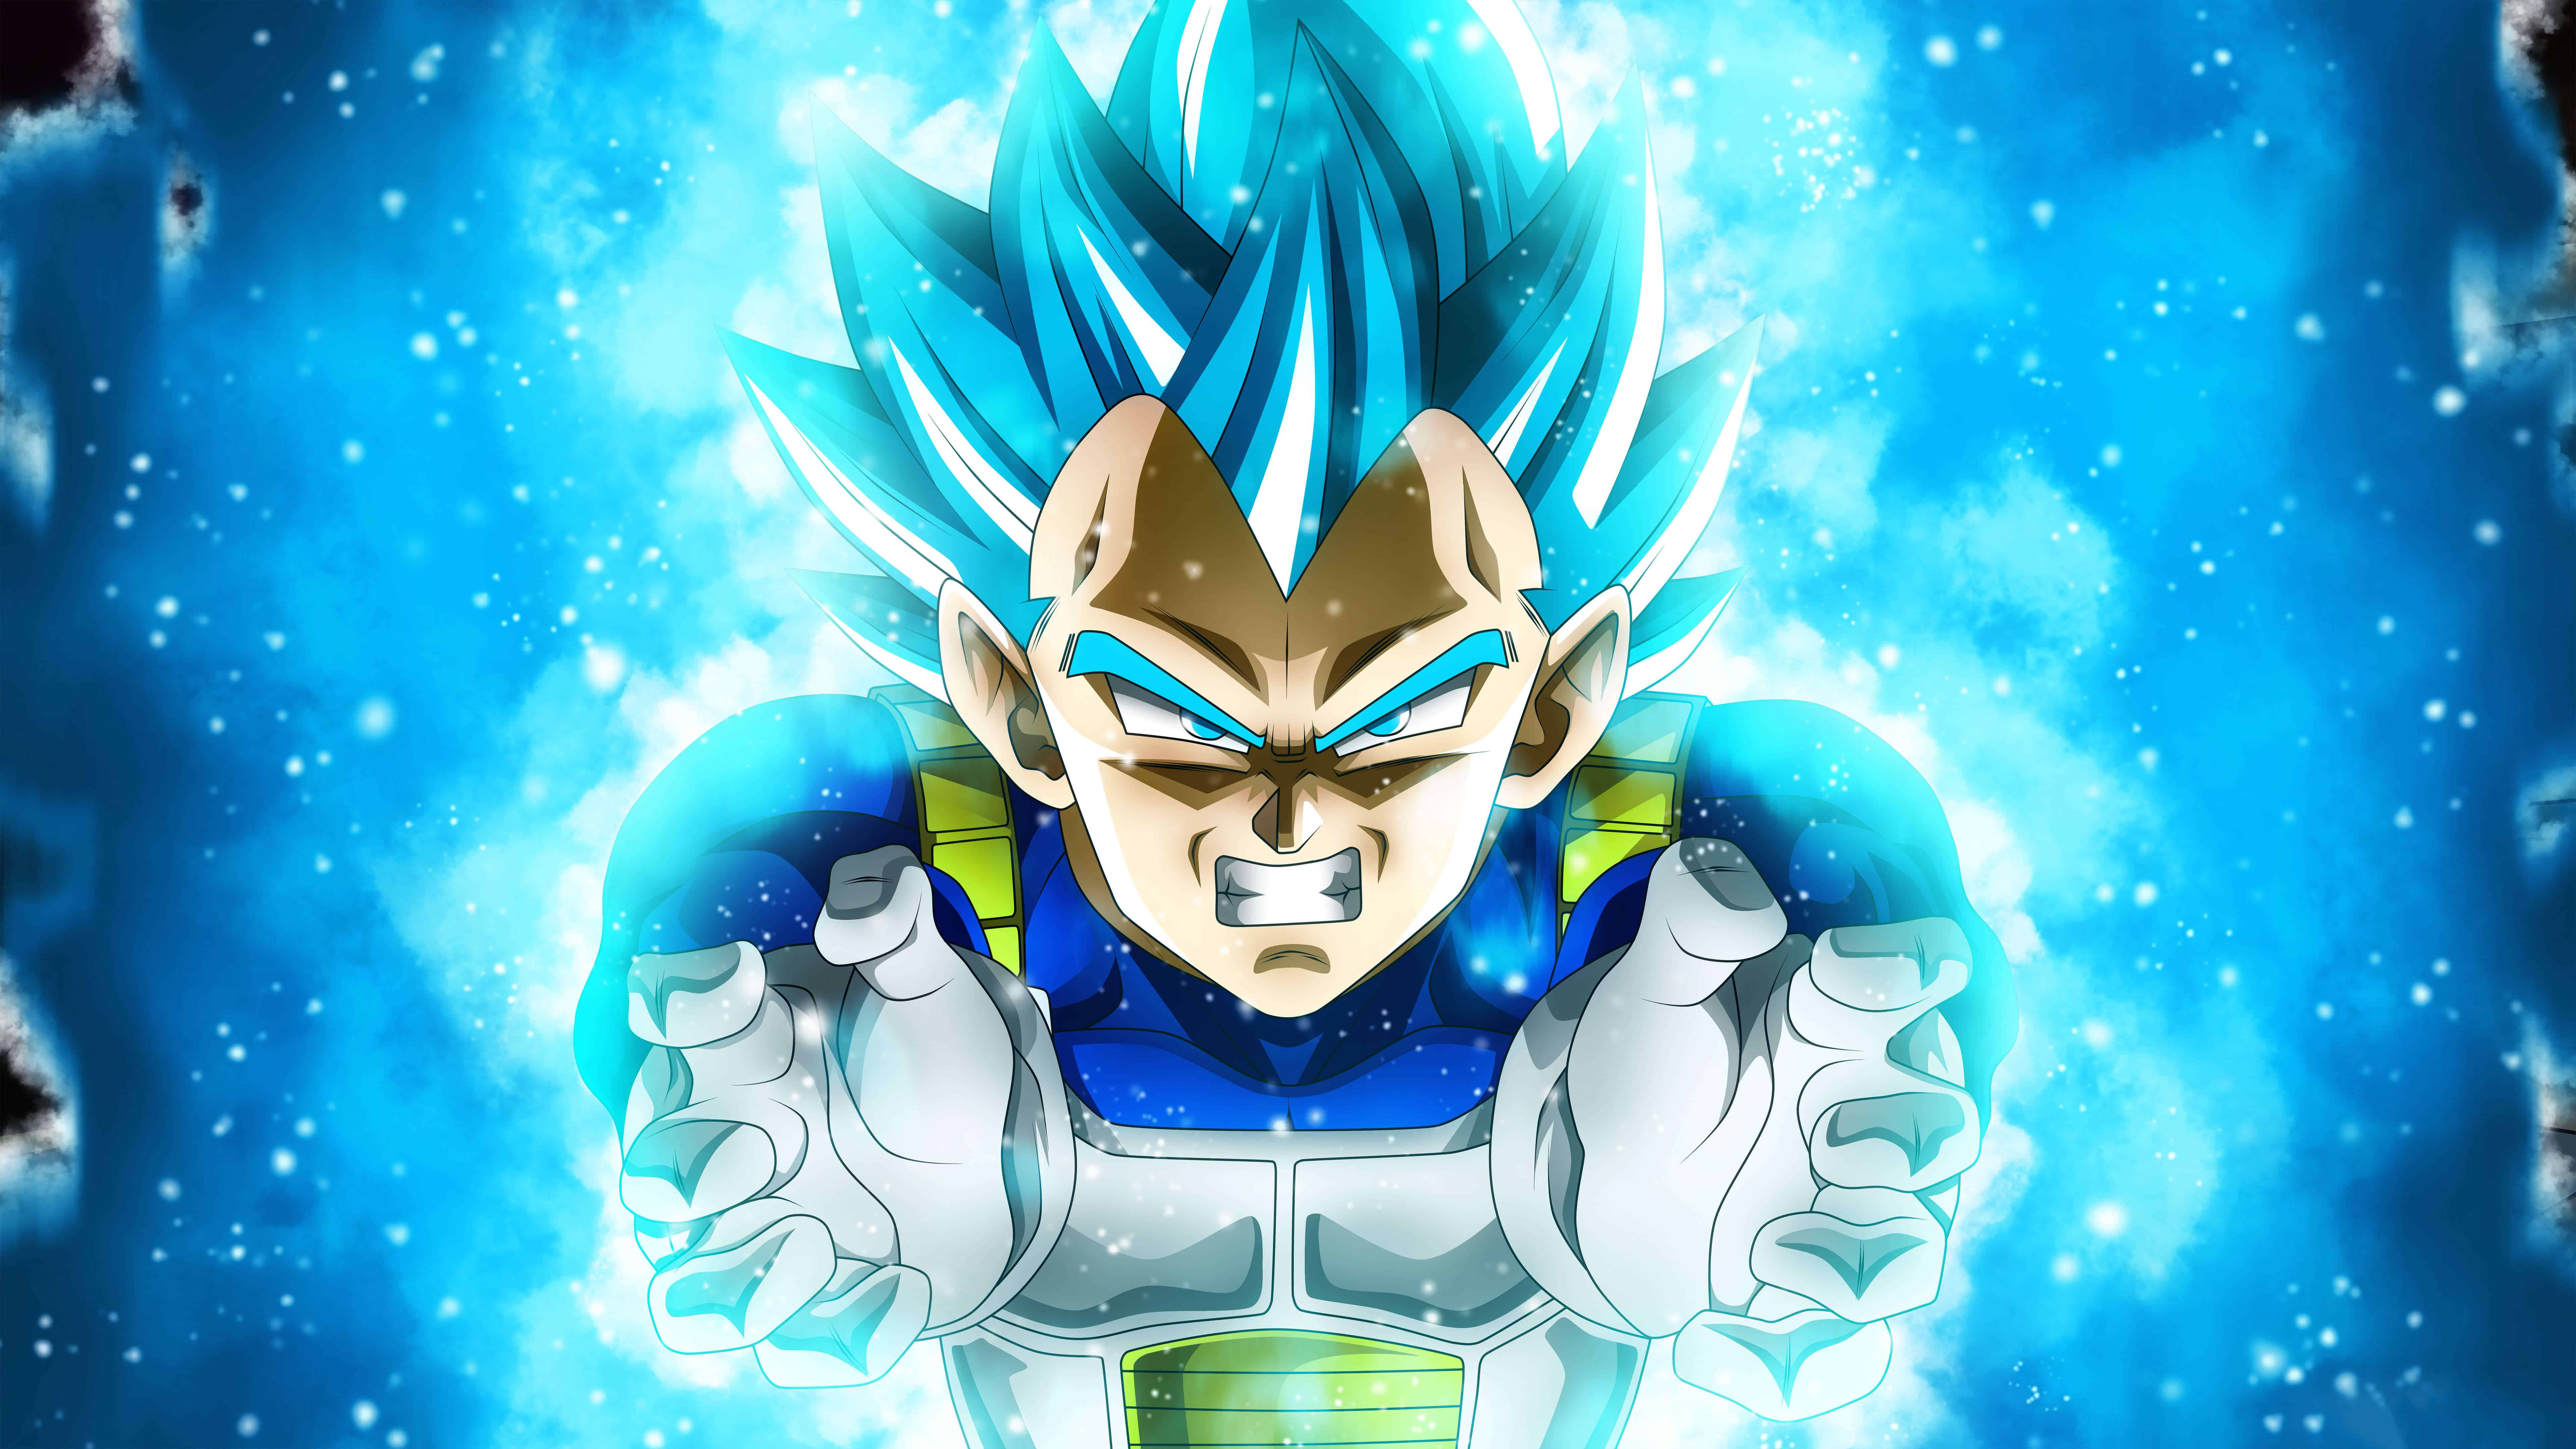 dragon ball vegeta uhd 8k wallpaper | pixelz